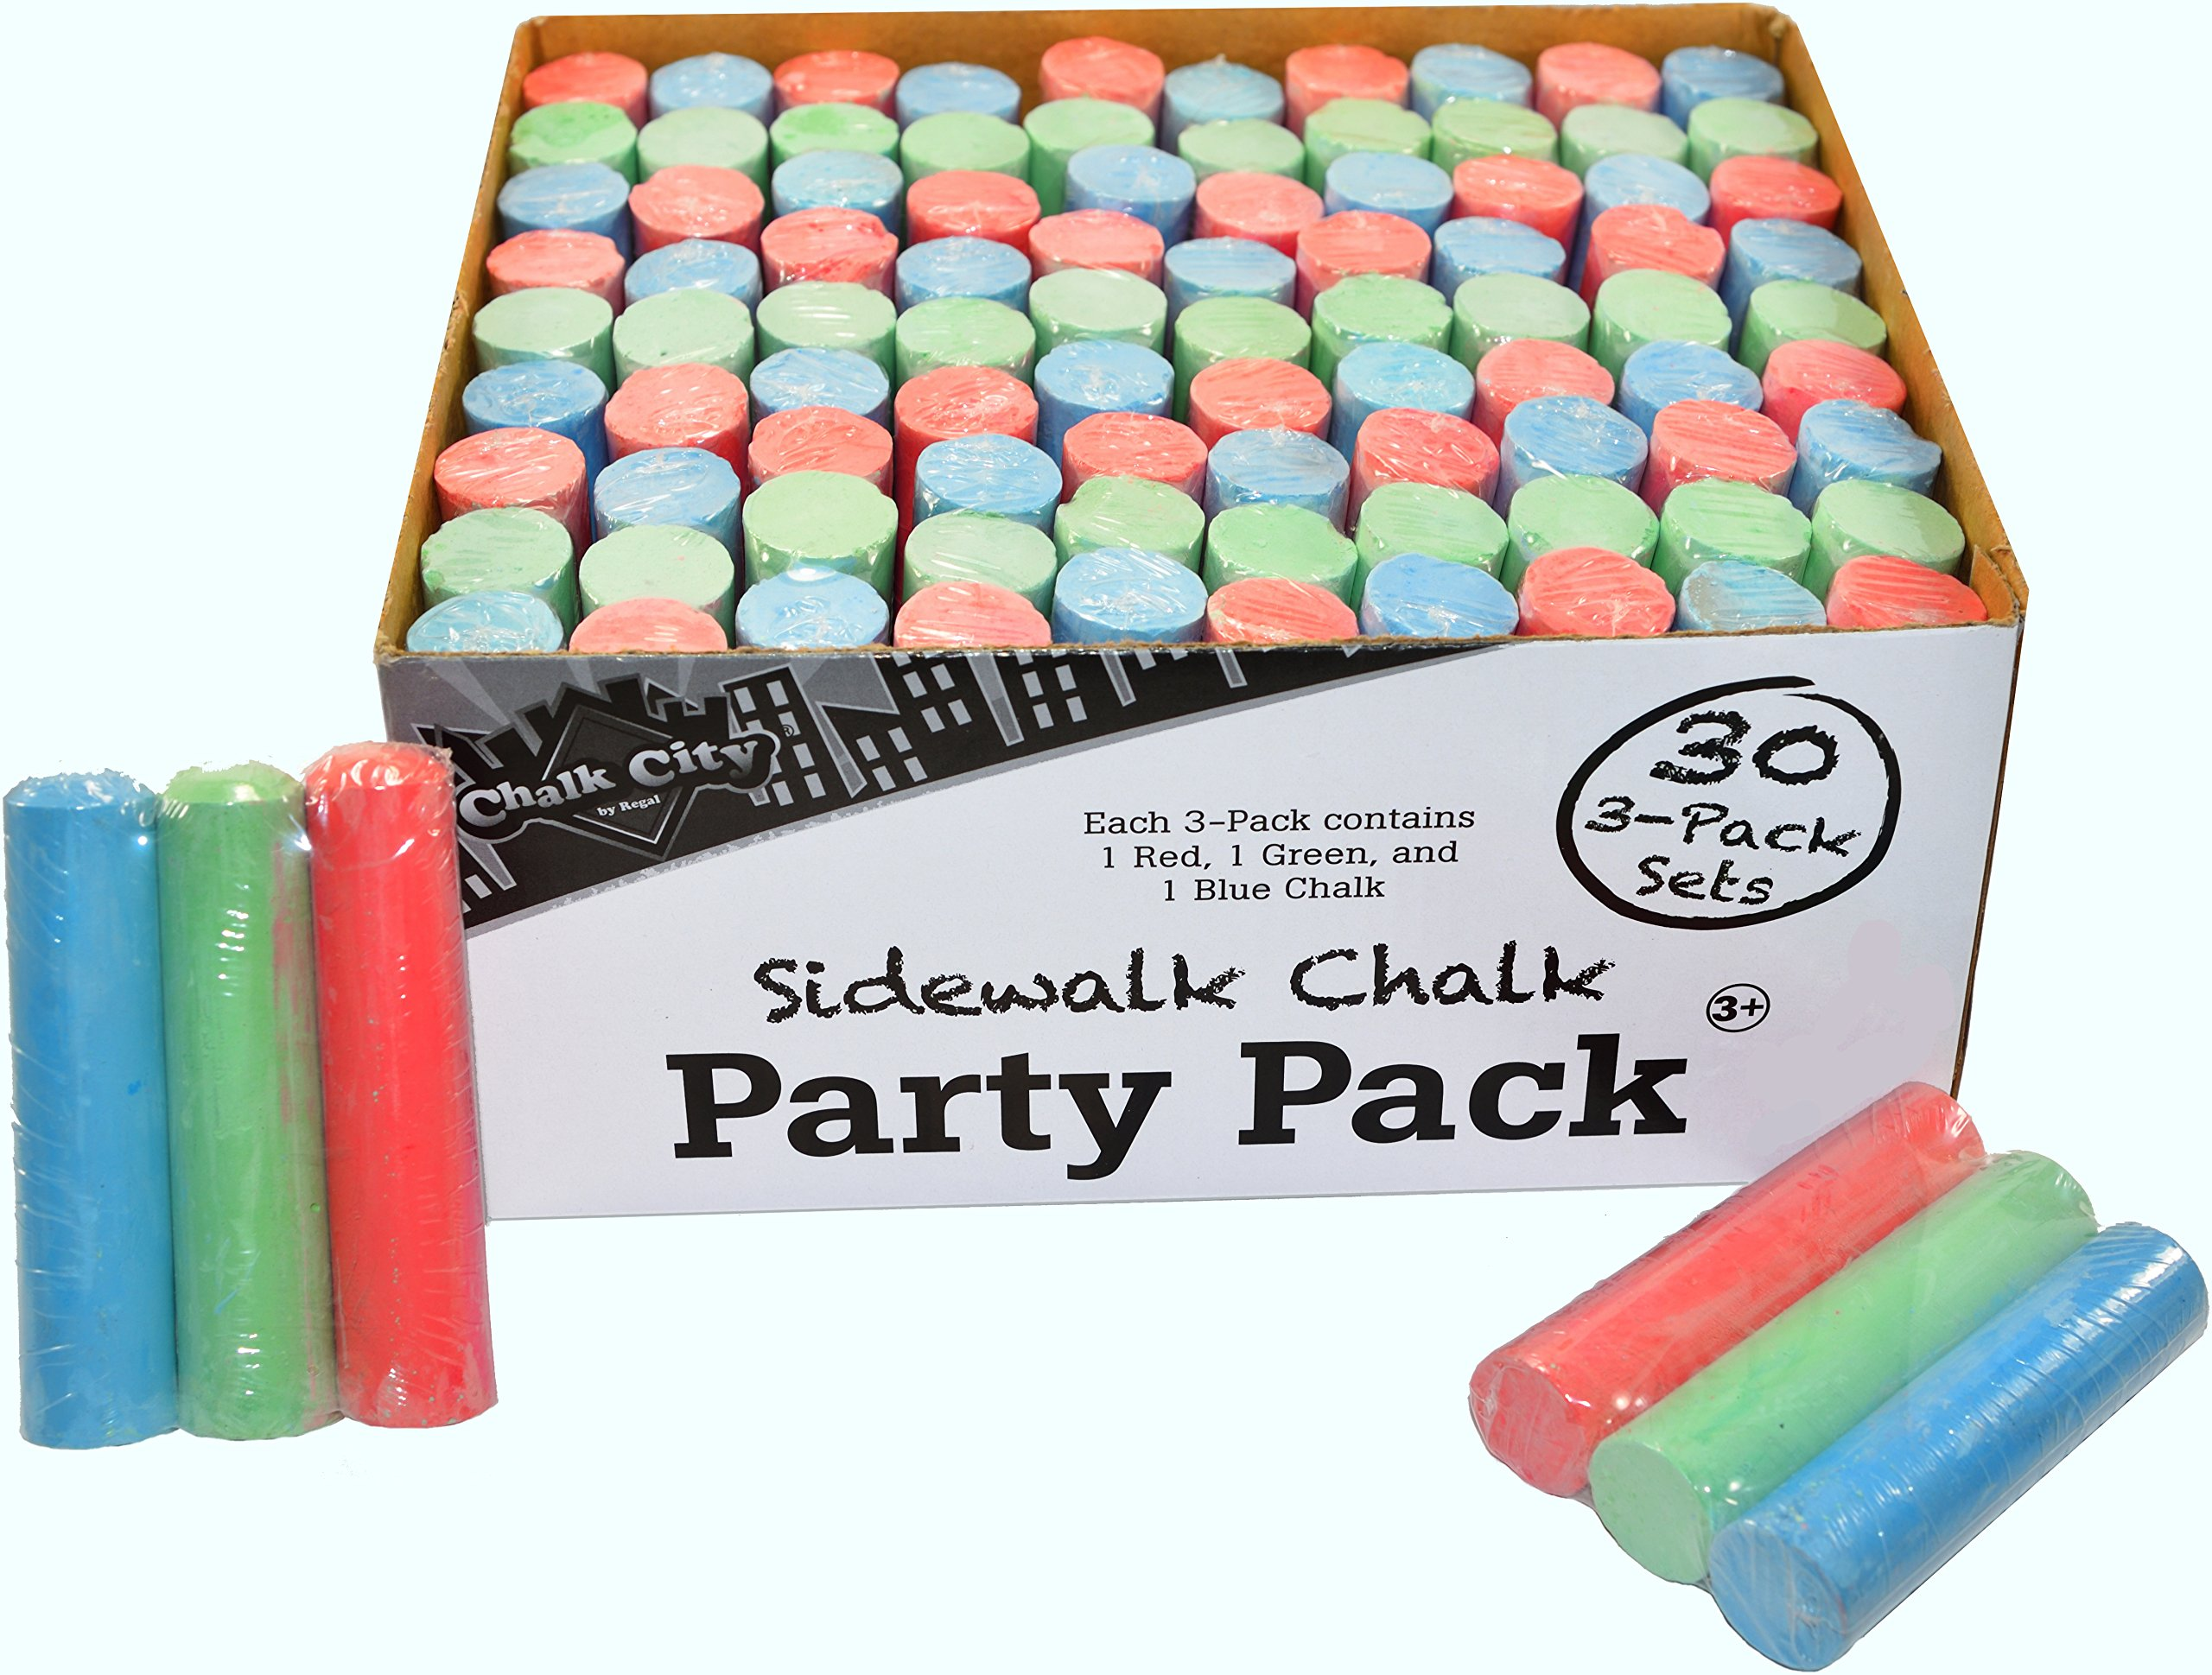 Chalk City - Party Pack Sidewalk Chalk 30 Jumbo 3 -Pack Sets of MultiColor Sidewalk Chalk for Party Favors (90 Chalks Total) by Chalk City